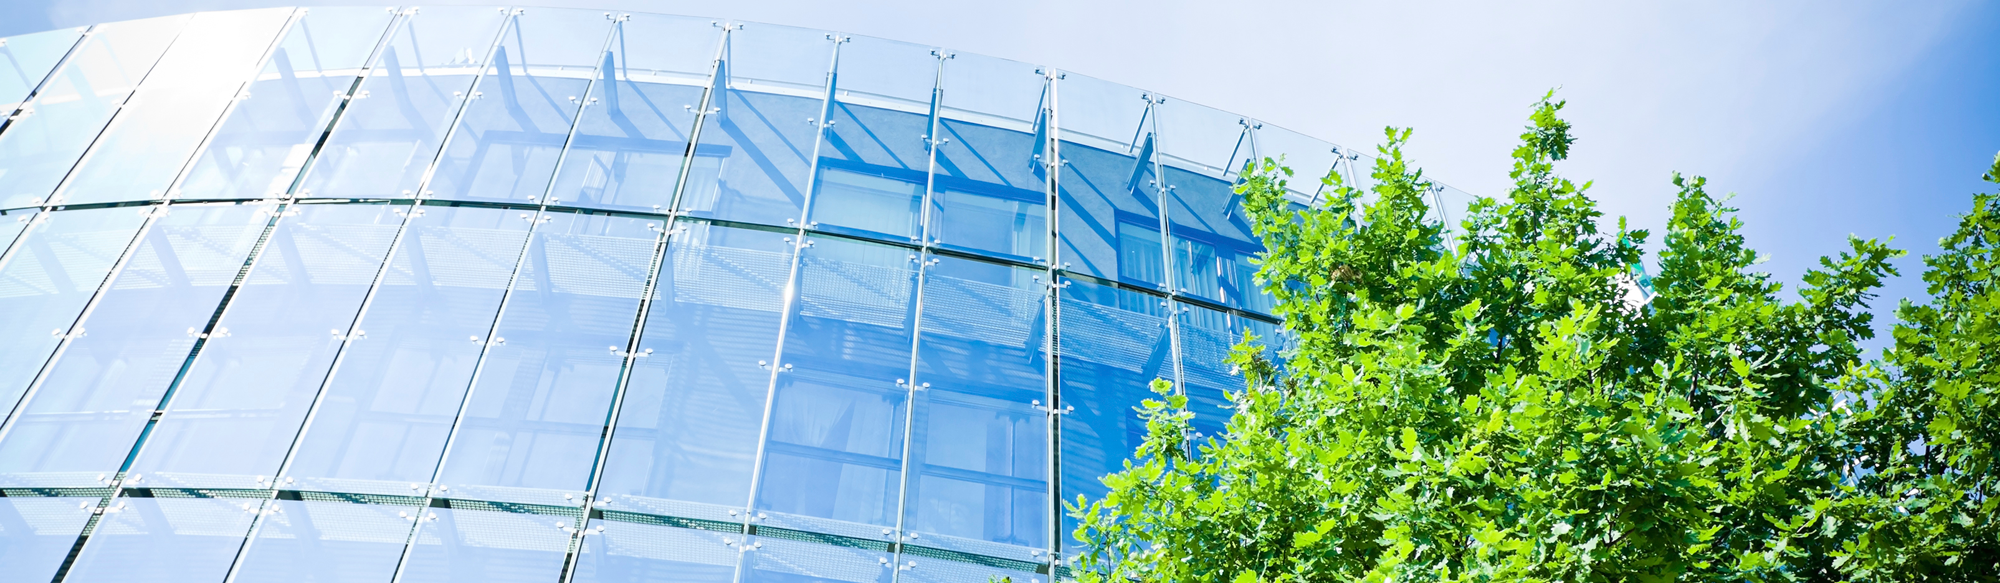 Glass building with green tree in front